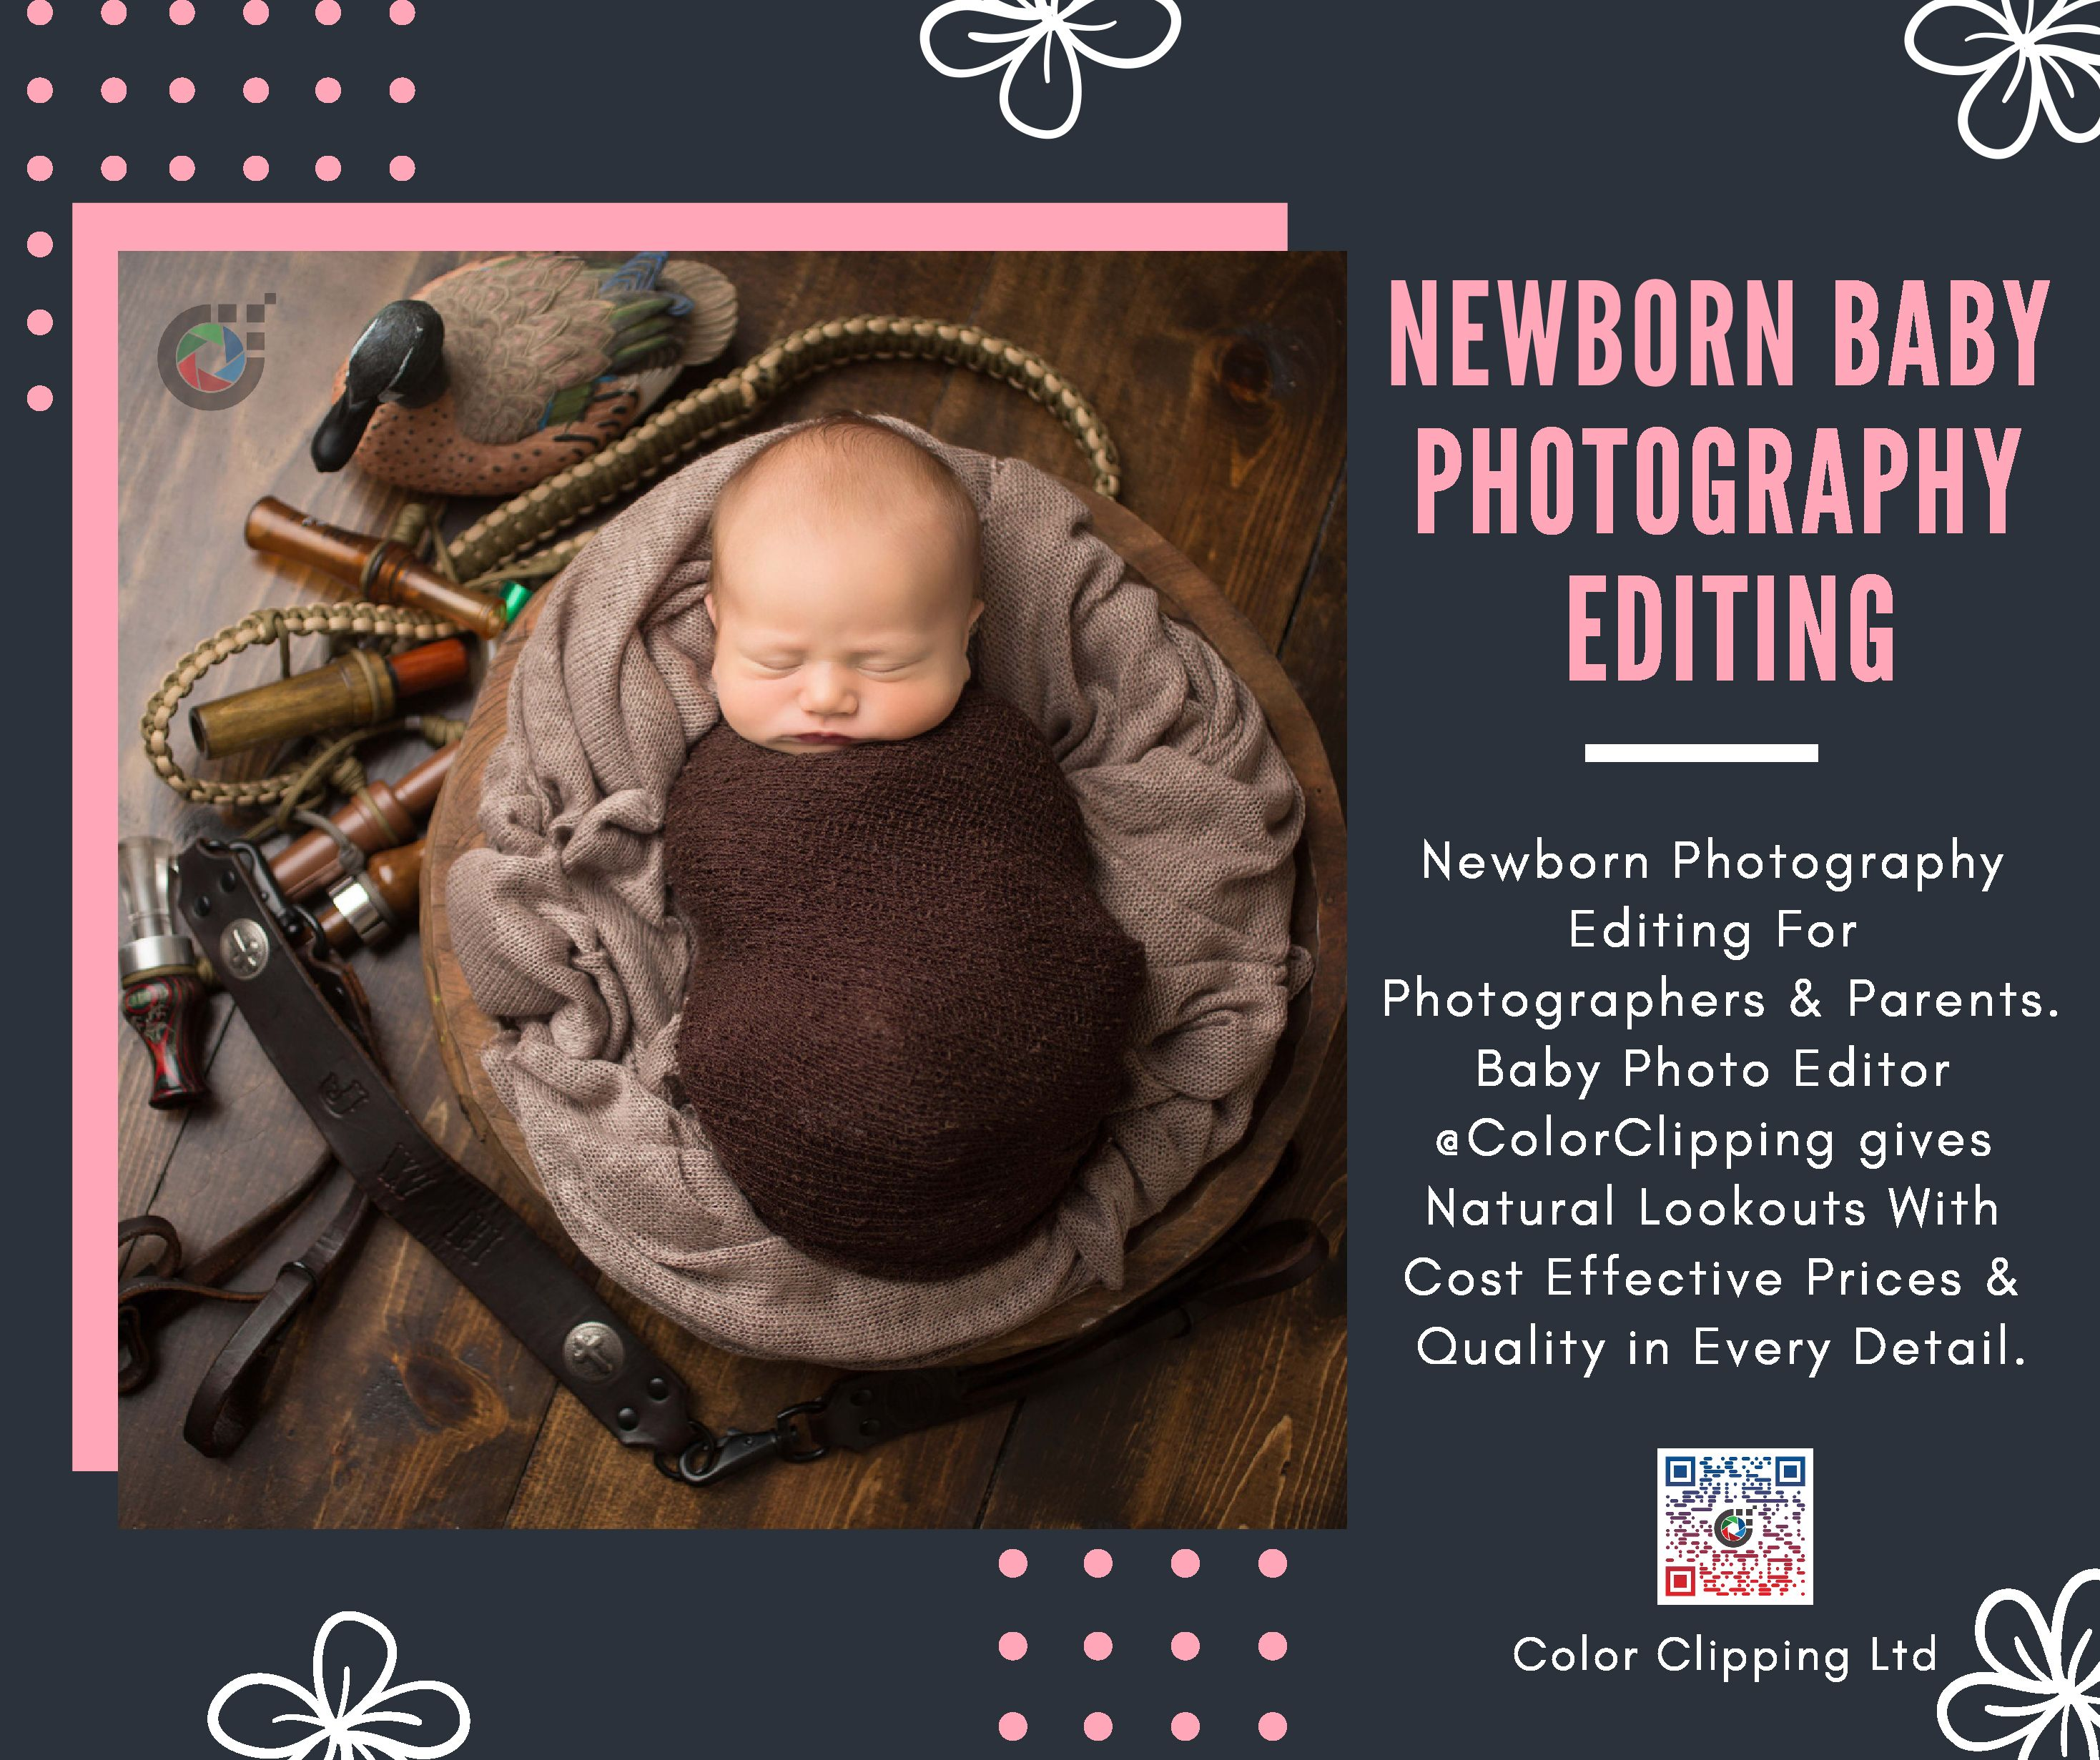 newborn photo editing services